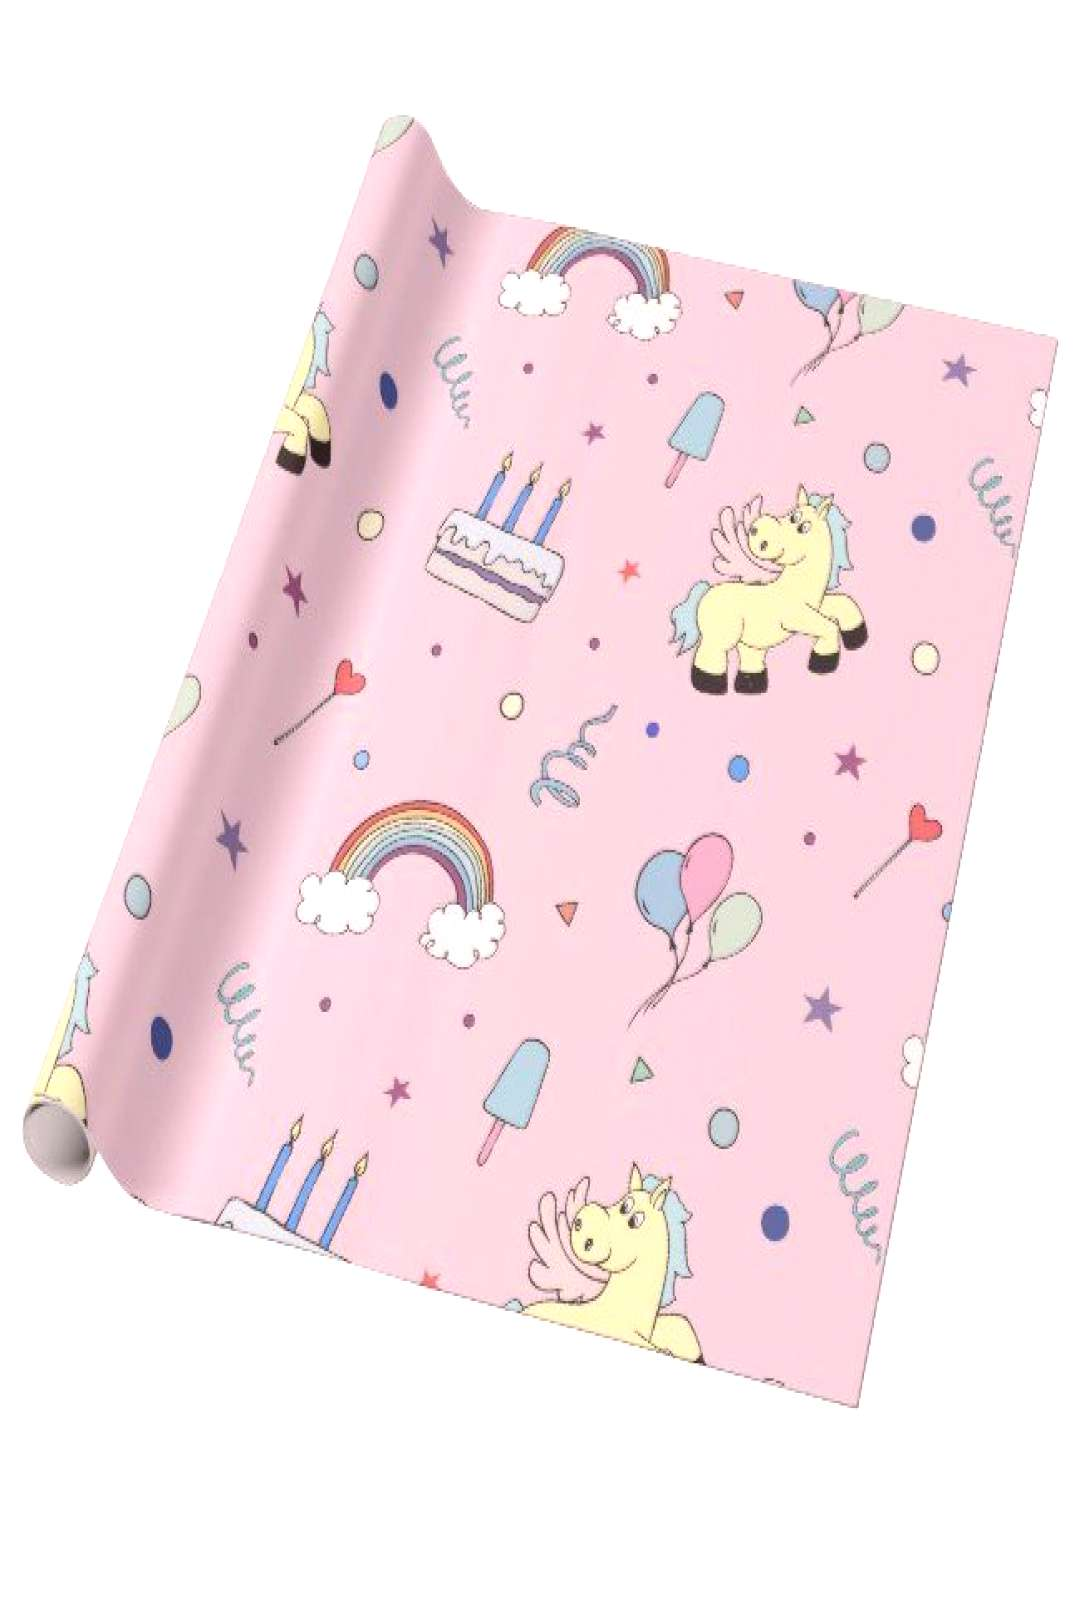 Pegasus party props | light pink kid birthday wrapping paper